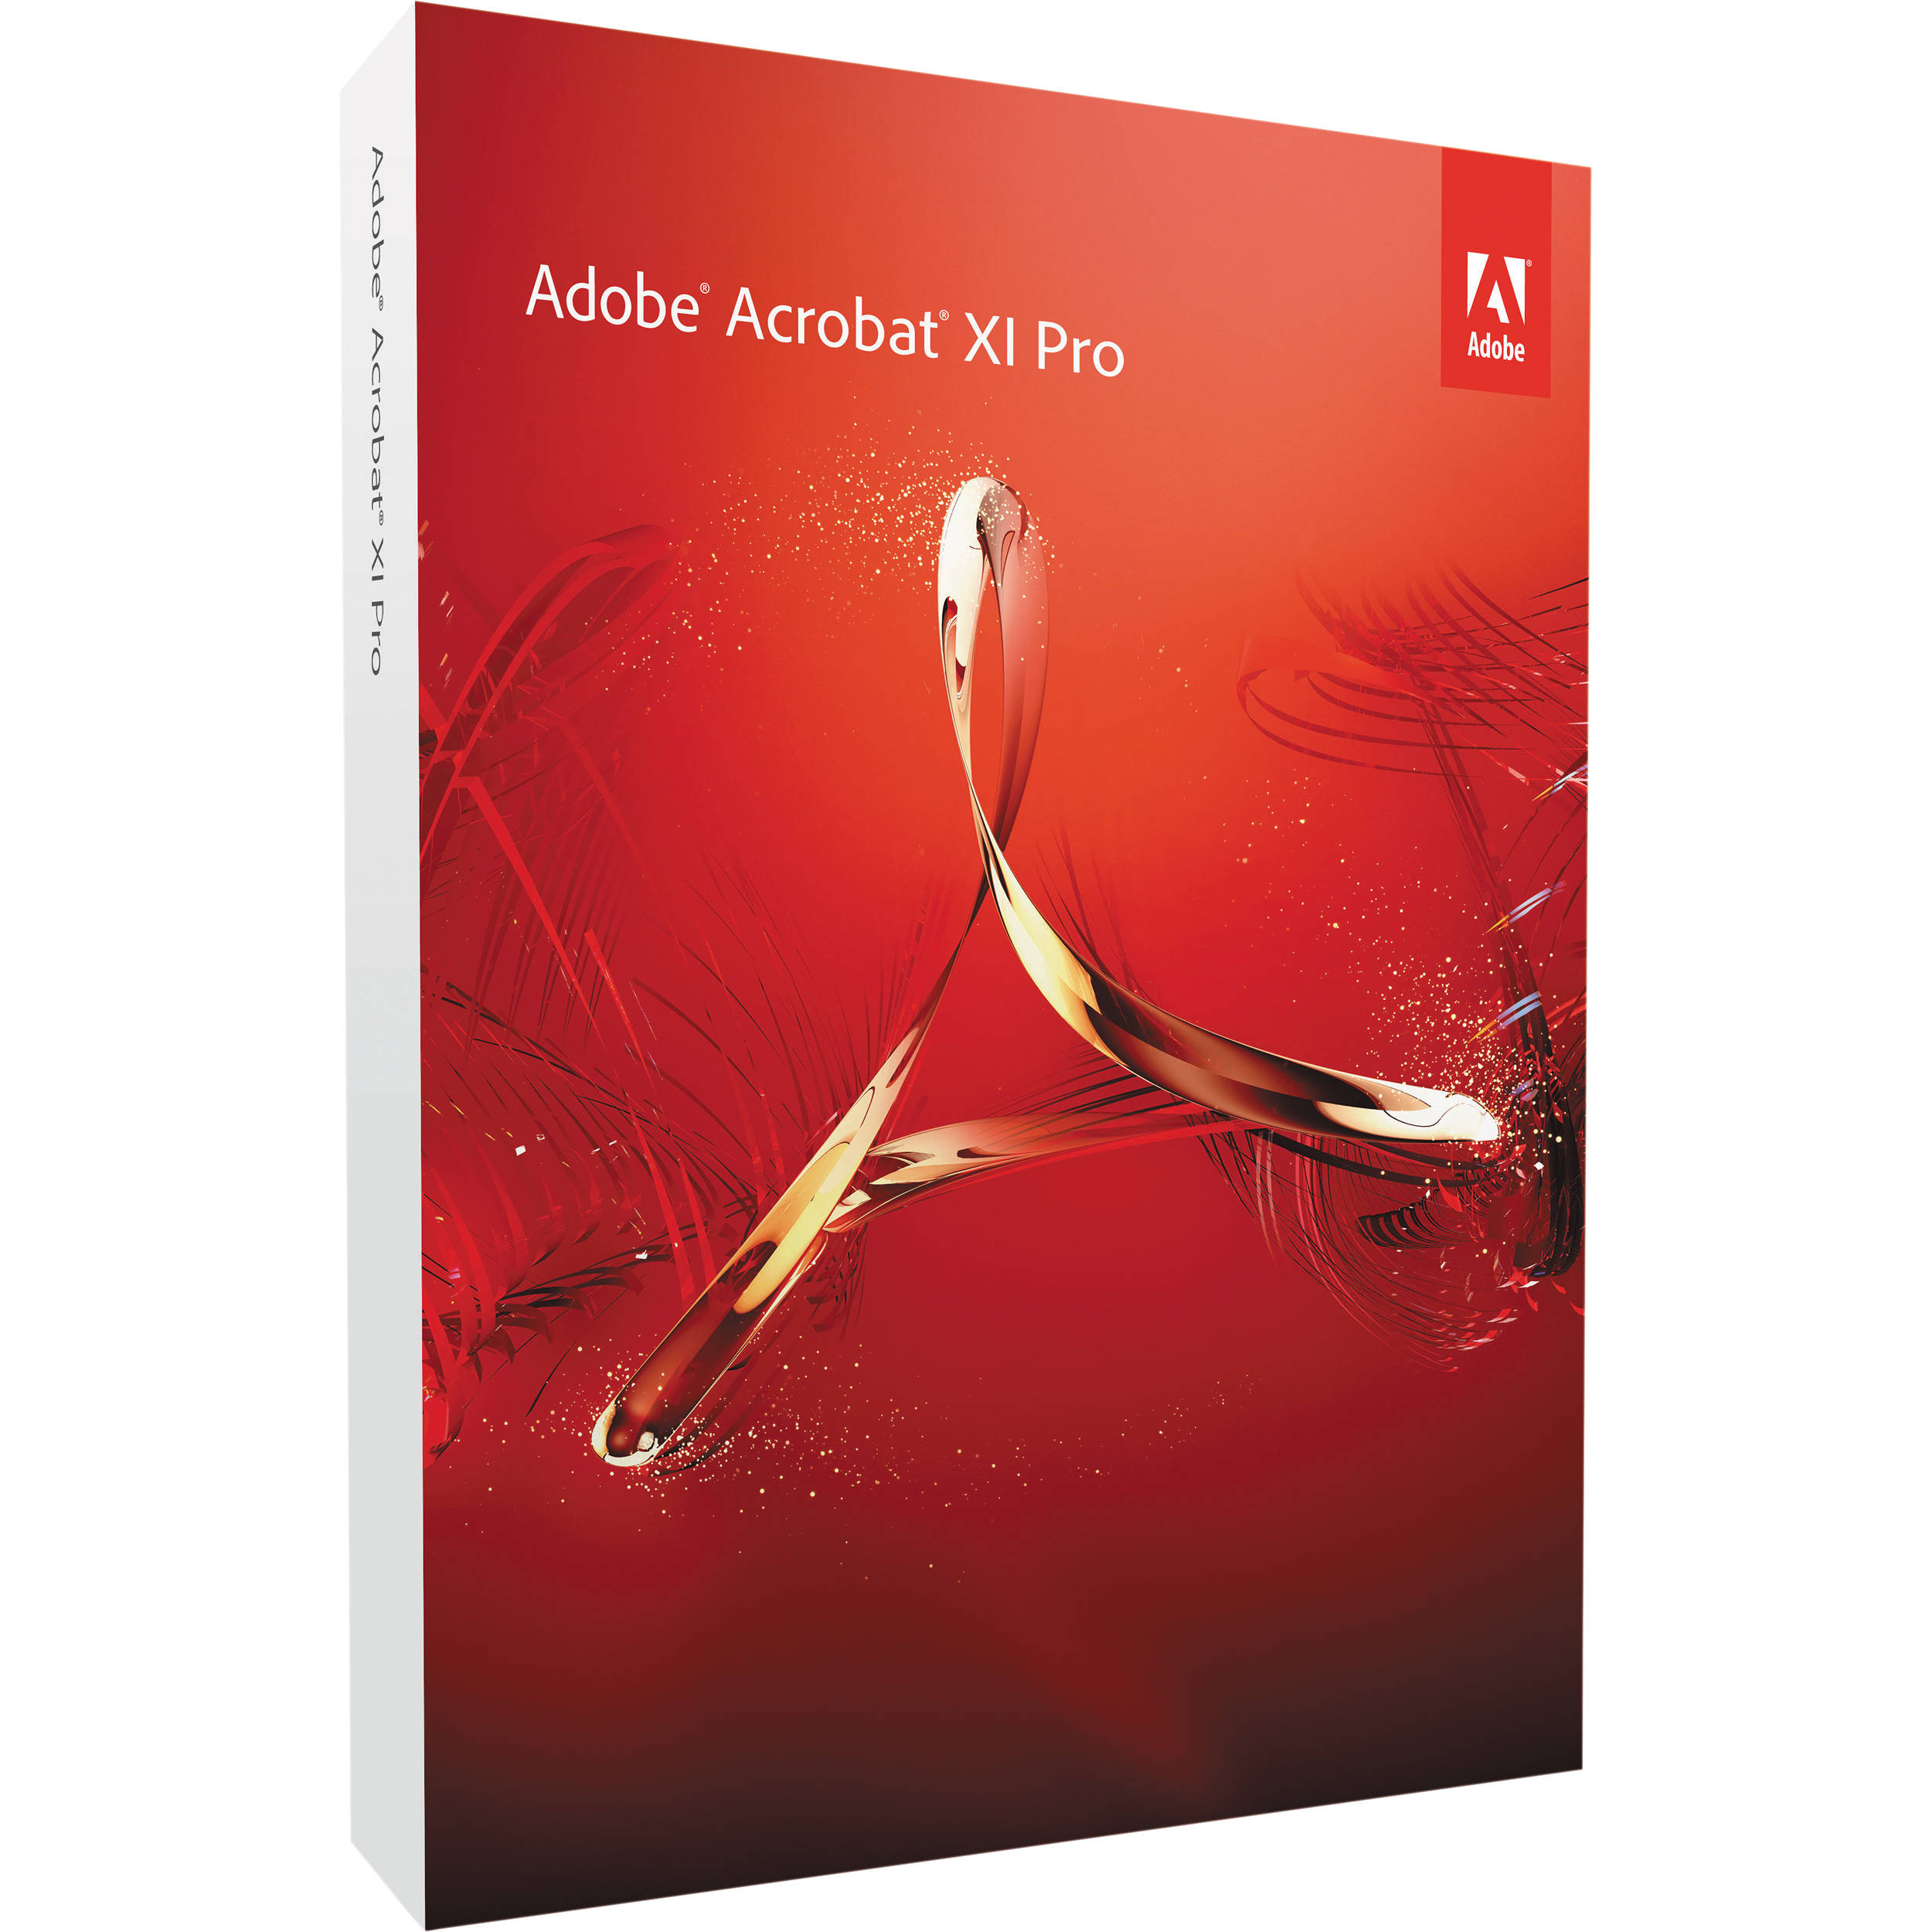 how much is Adobe Acrobat Pro for students edition?